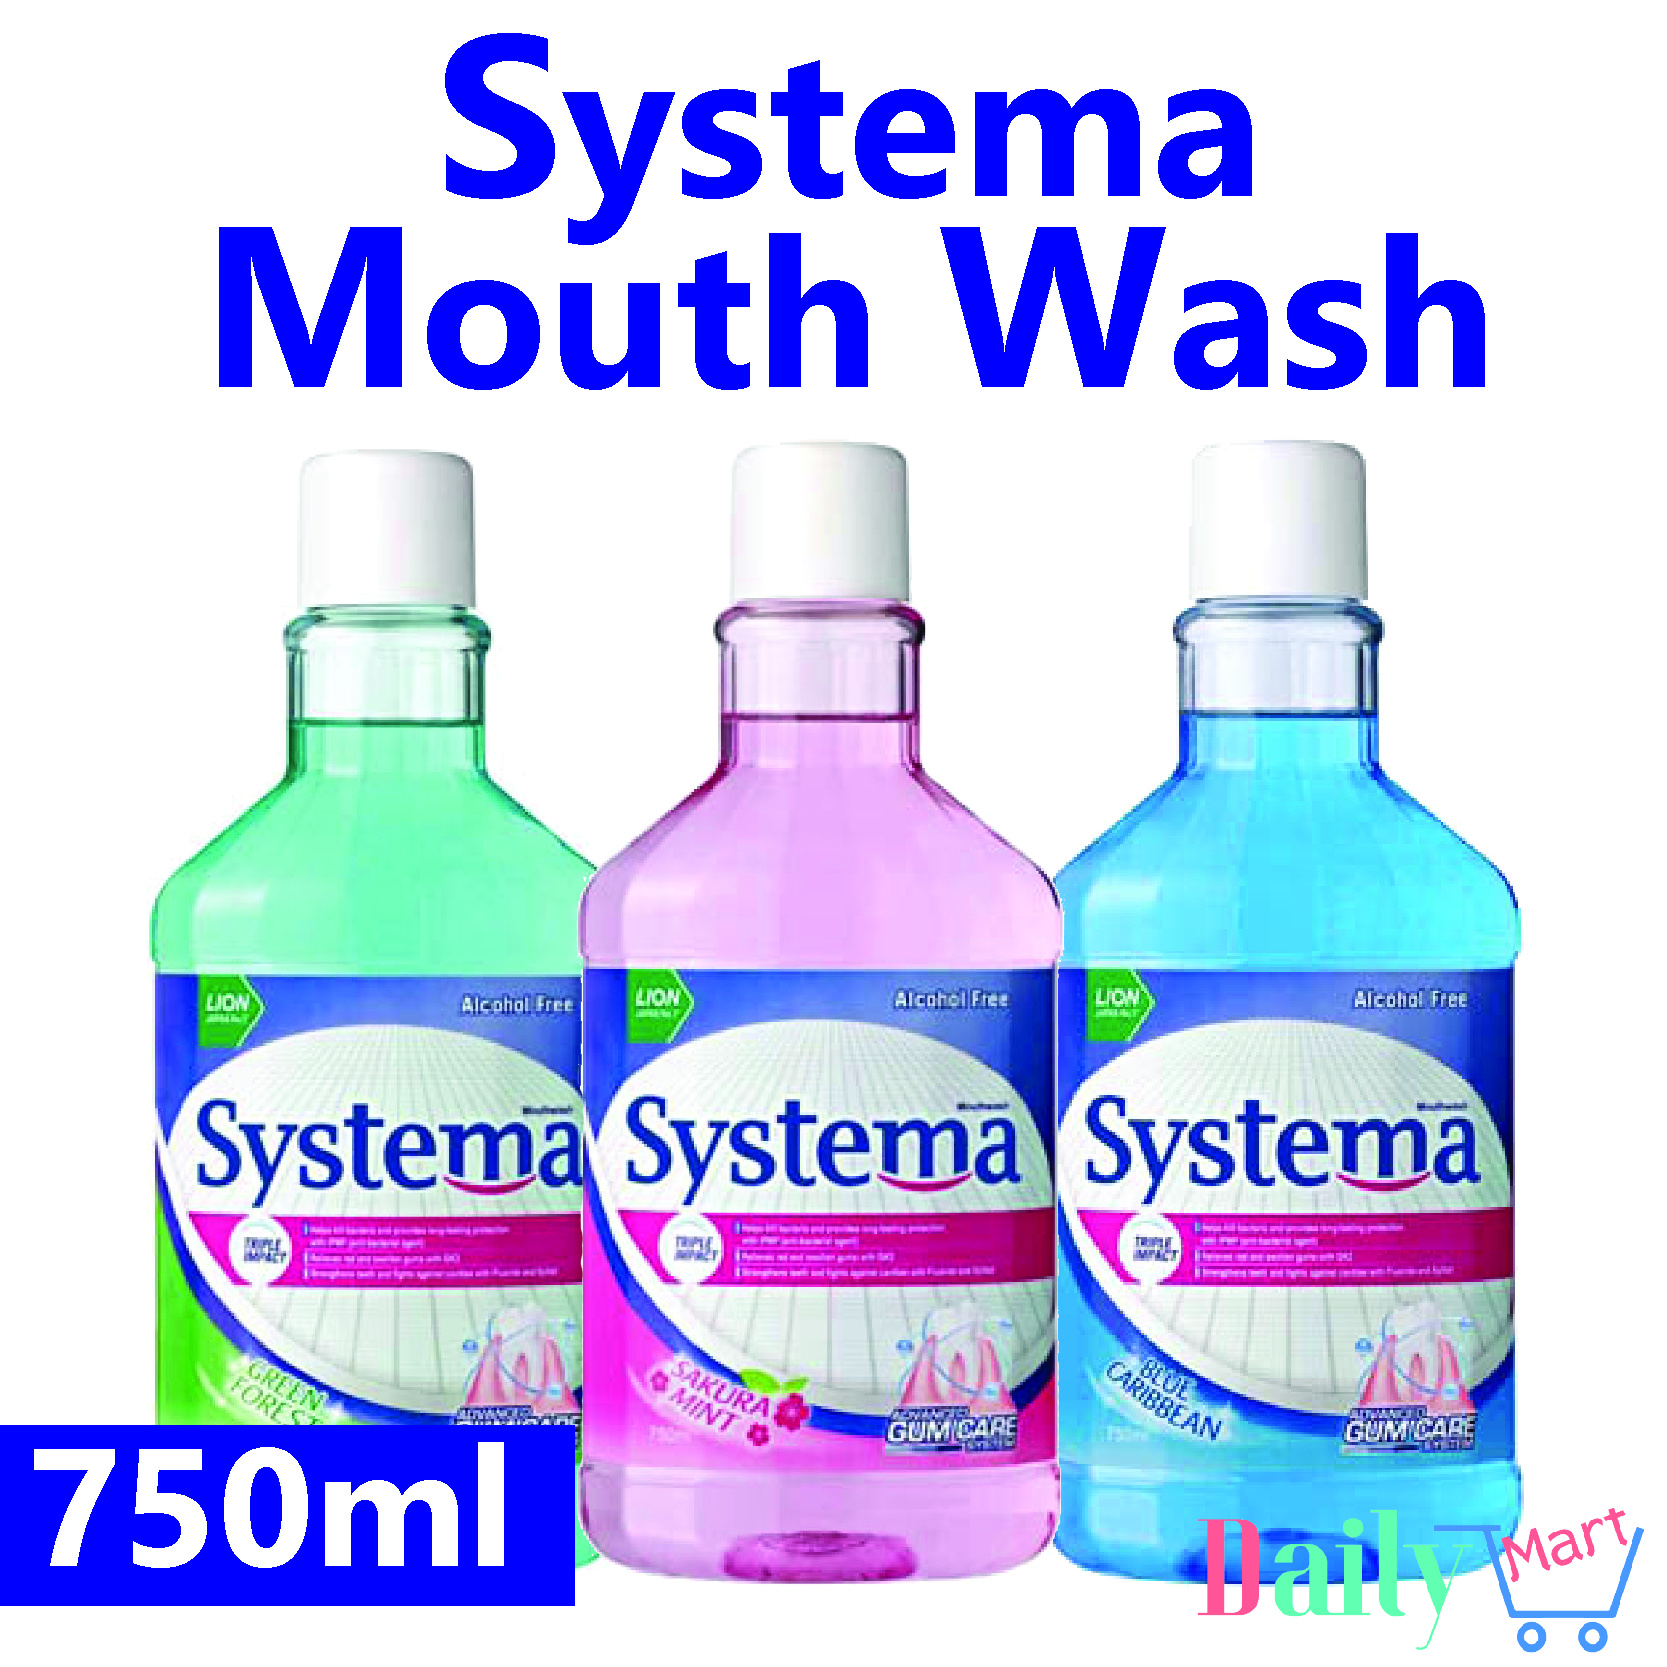 Qoo10 Systema Mouth Wash Household Bedding Toothbrush Power Clean Regular Fit To Viewer